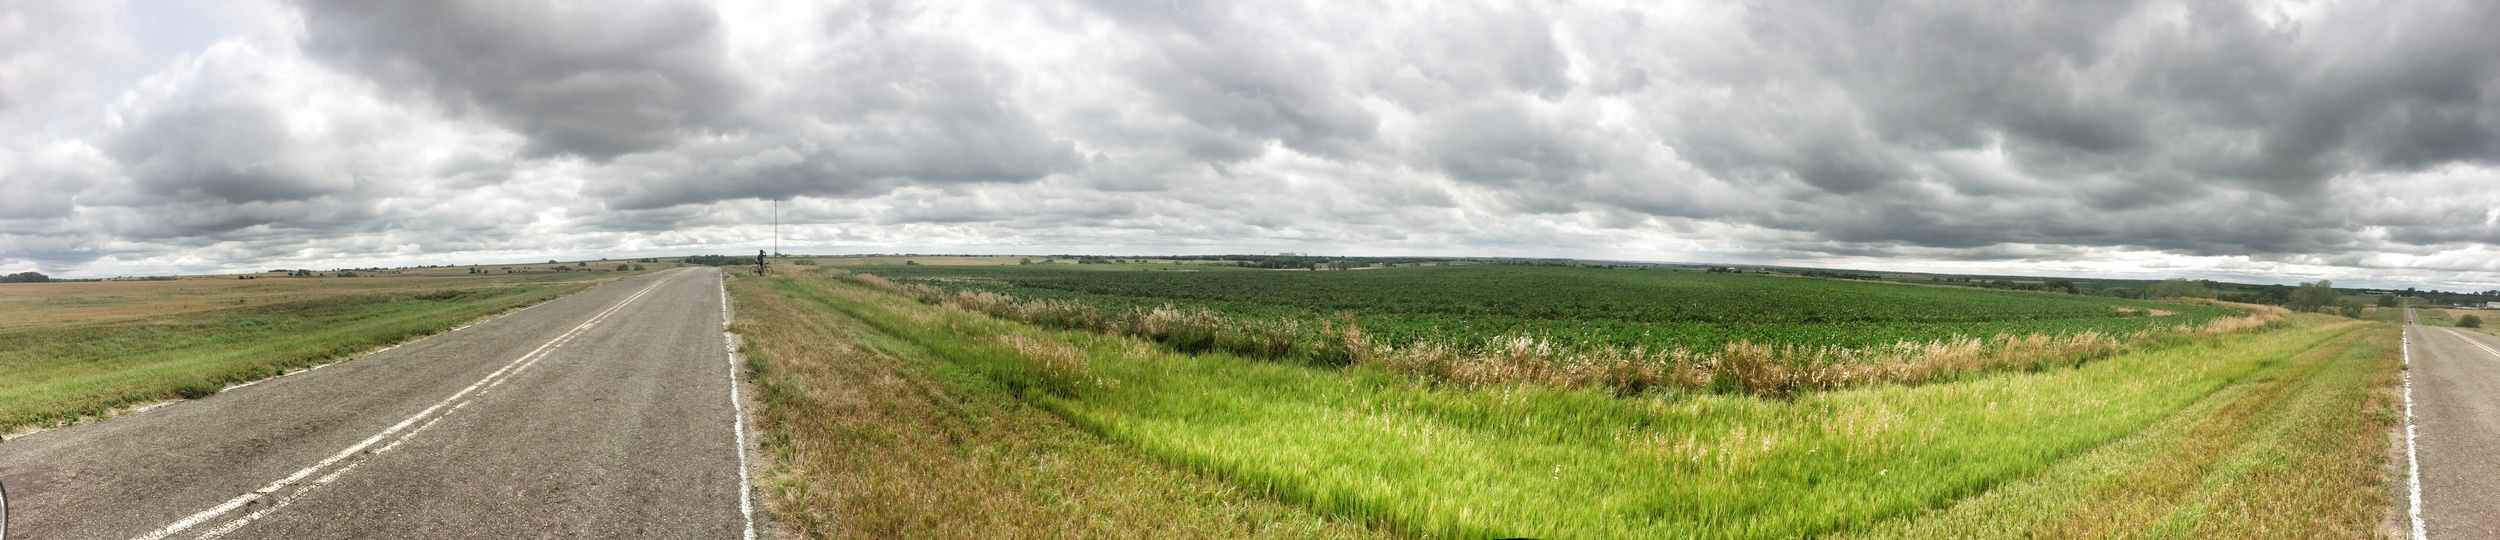 The low grey clouds and flat horizon is what I'll always remember of Nebraska